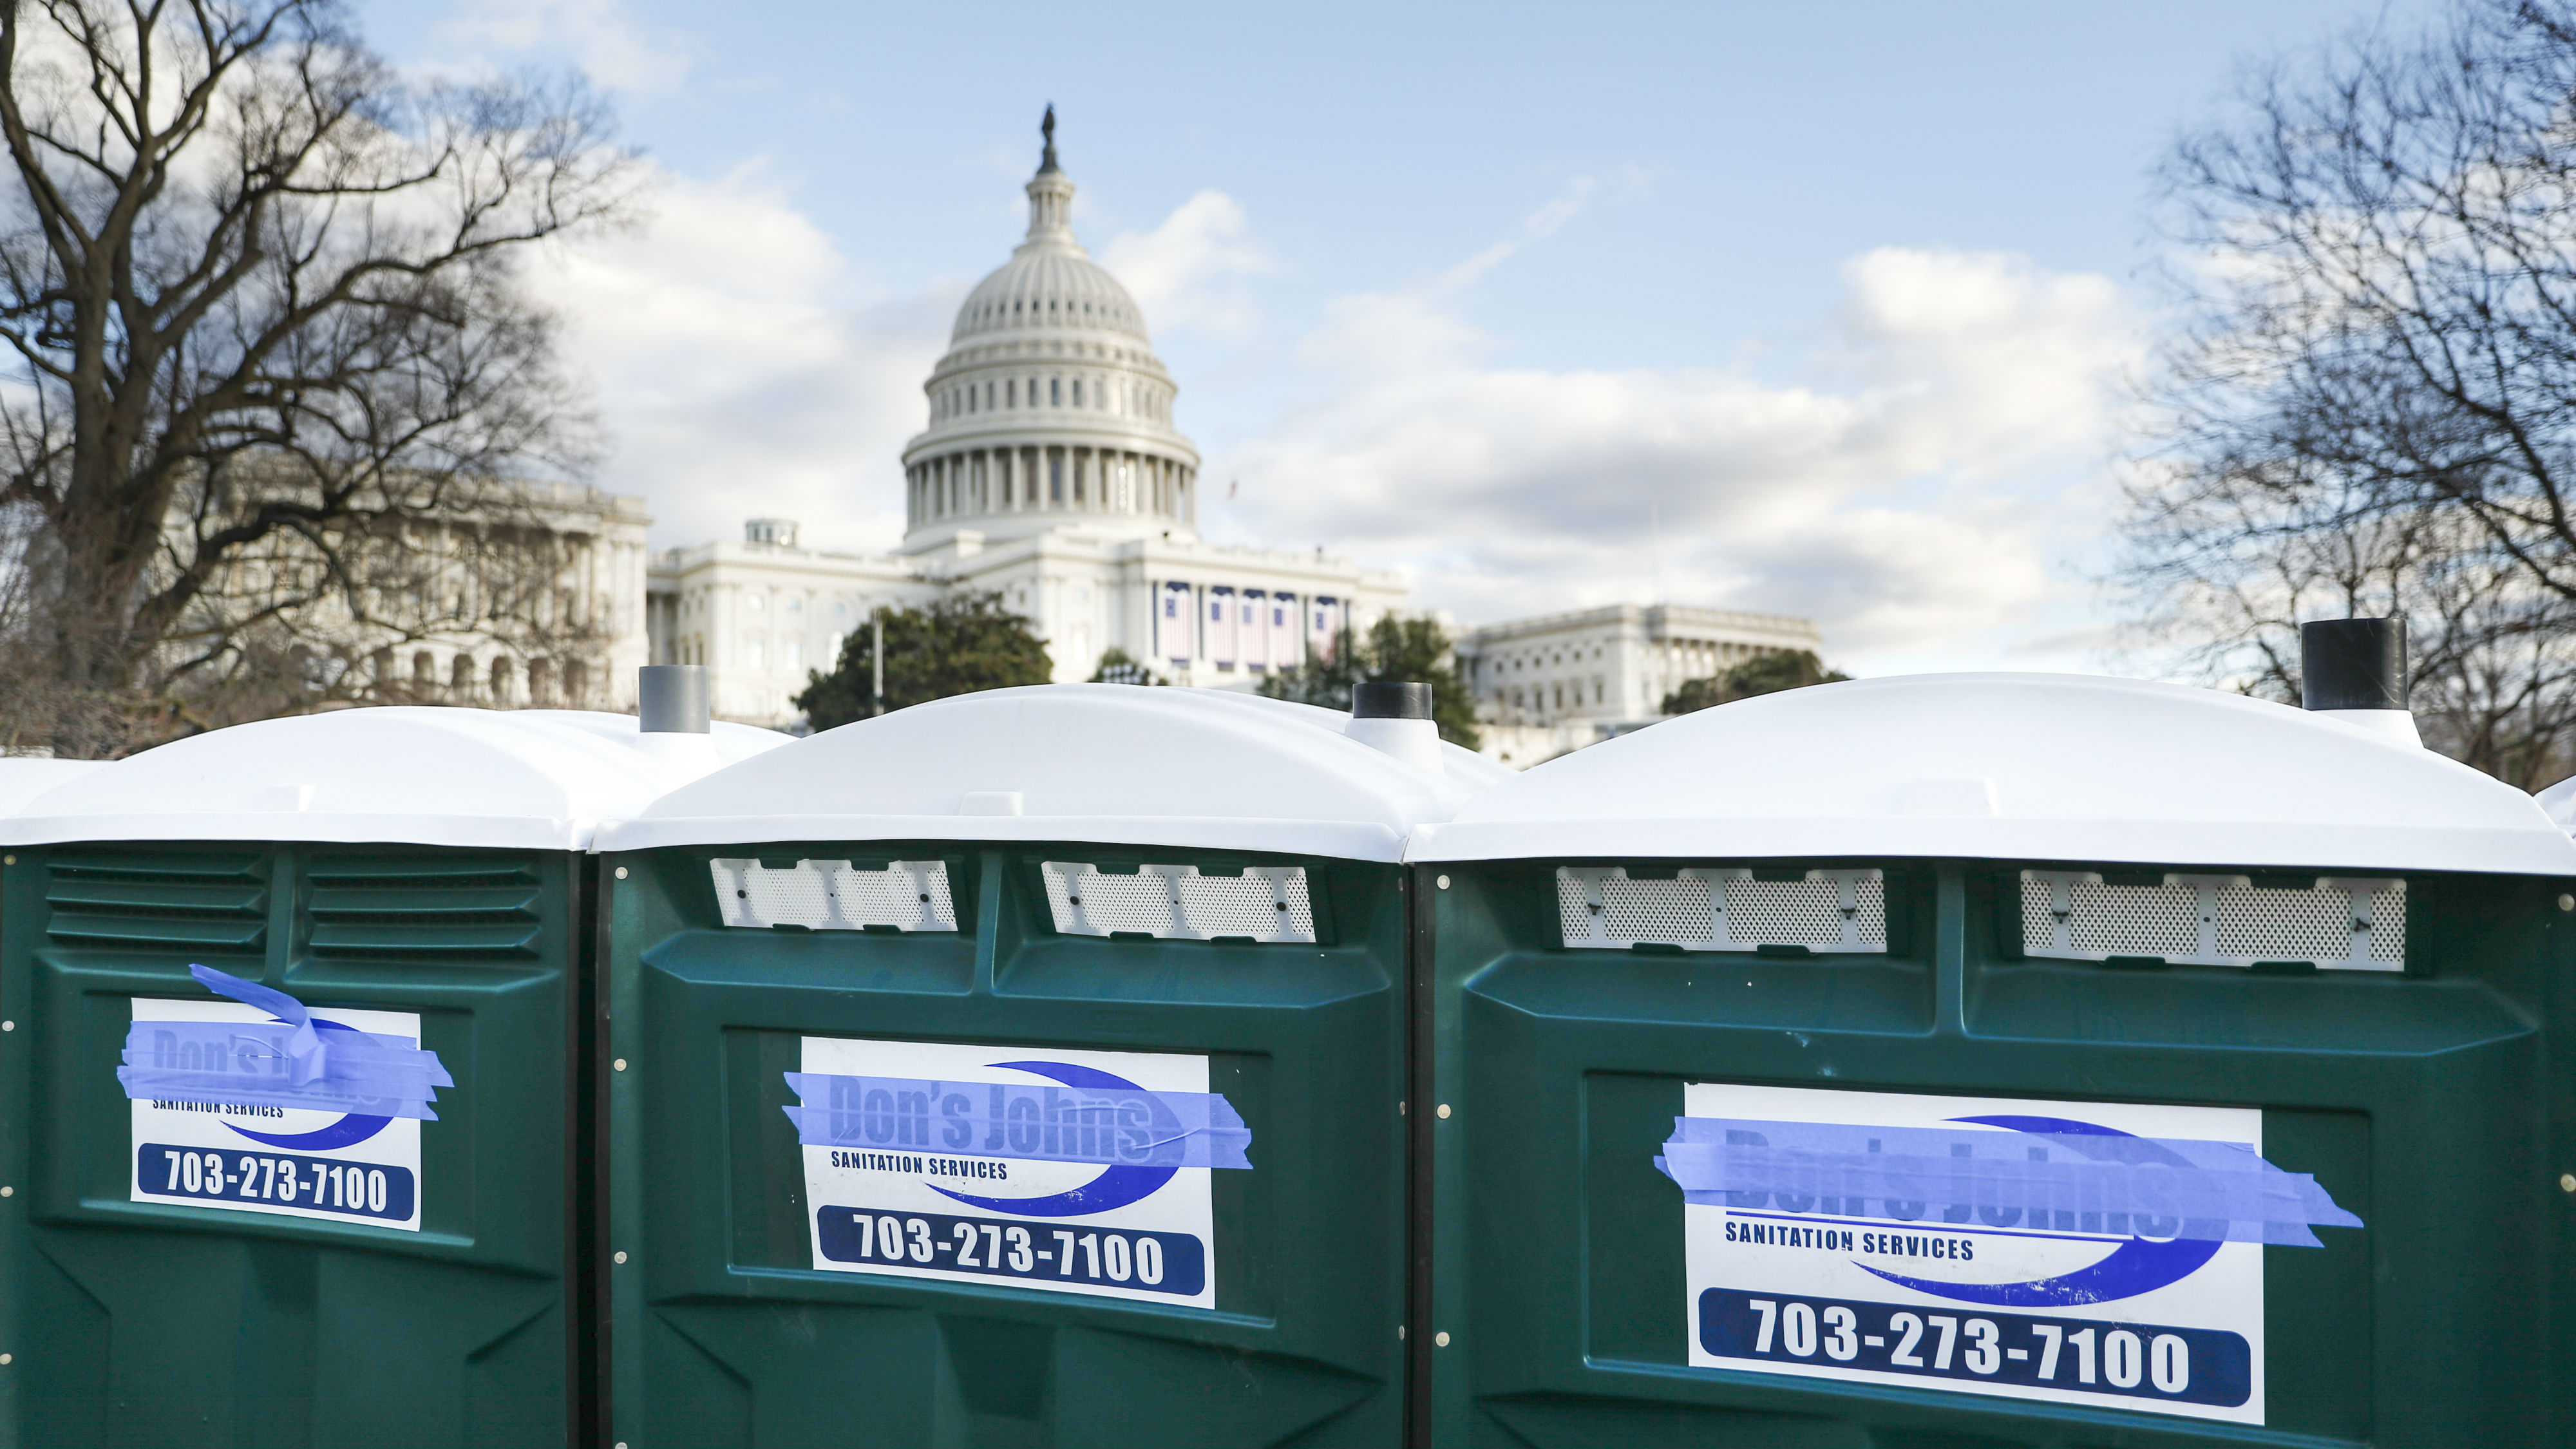 """Portable toilets have their brand name """"Don's Johns"""" covered with masking tape as preparations continue for Friday's presidential inauguration, Wednesday, Jan. 18, 2017, on Capitol Hill in Washington."""